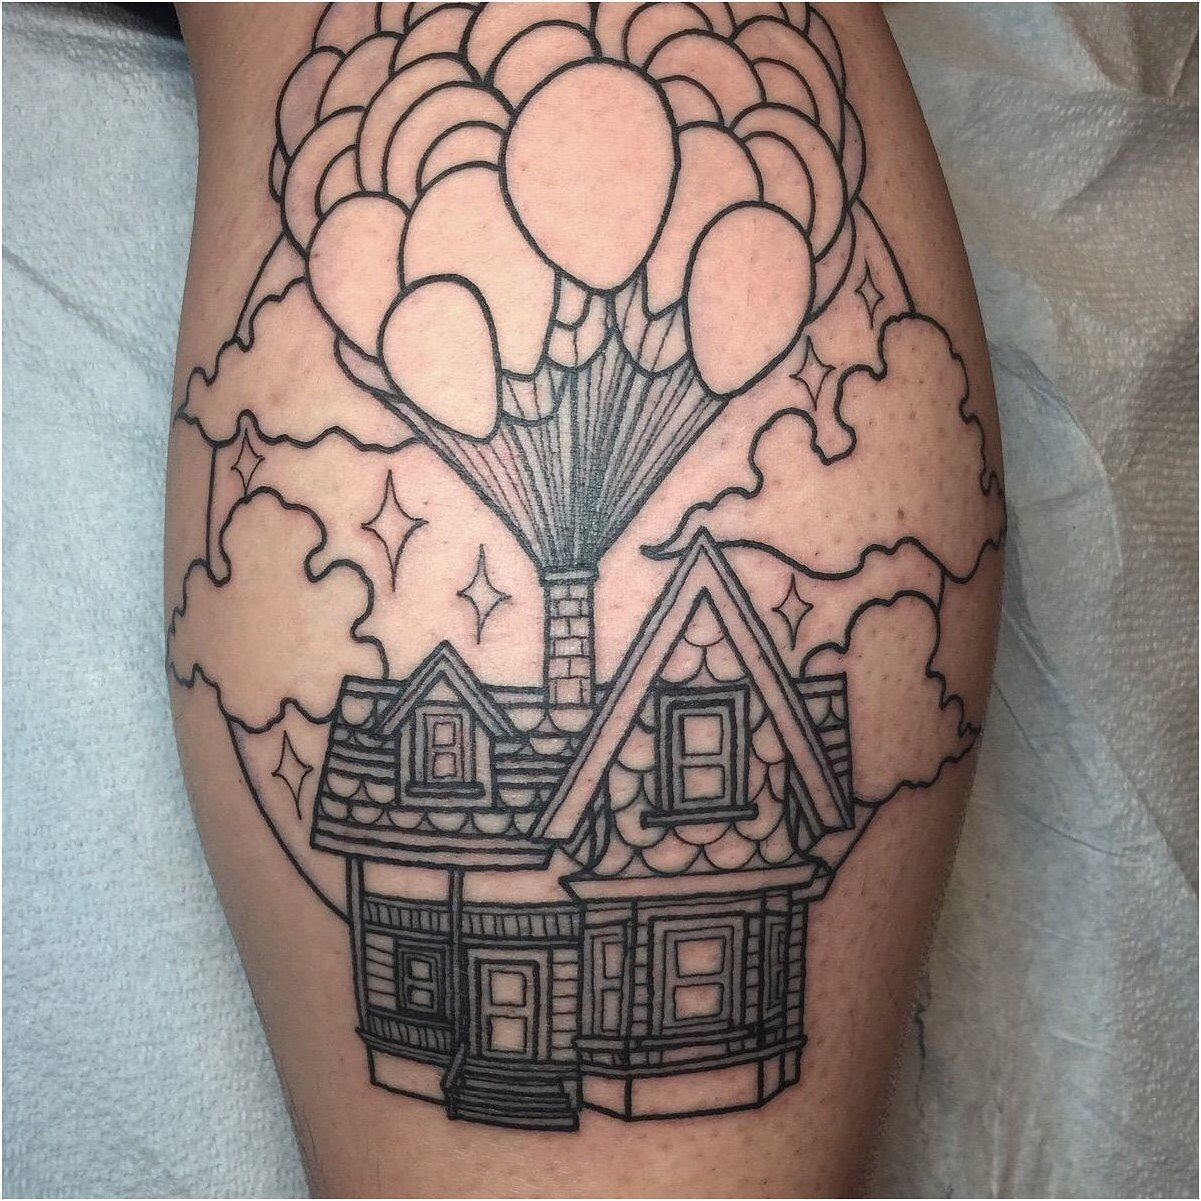 the nicest tattoos in the world, cool small tattoos with